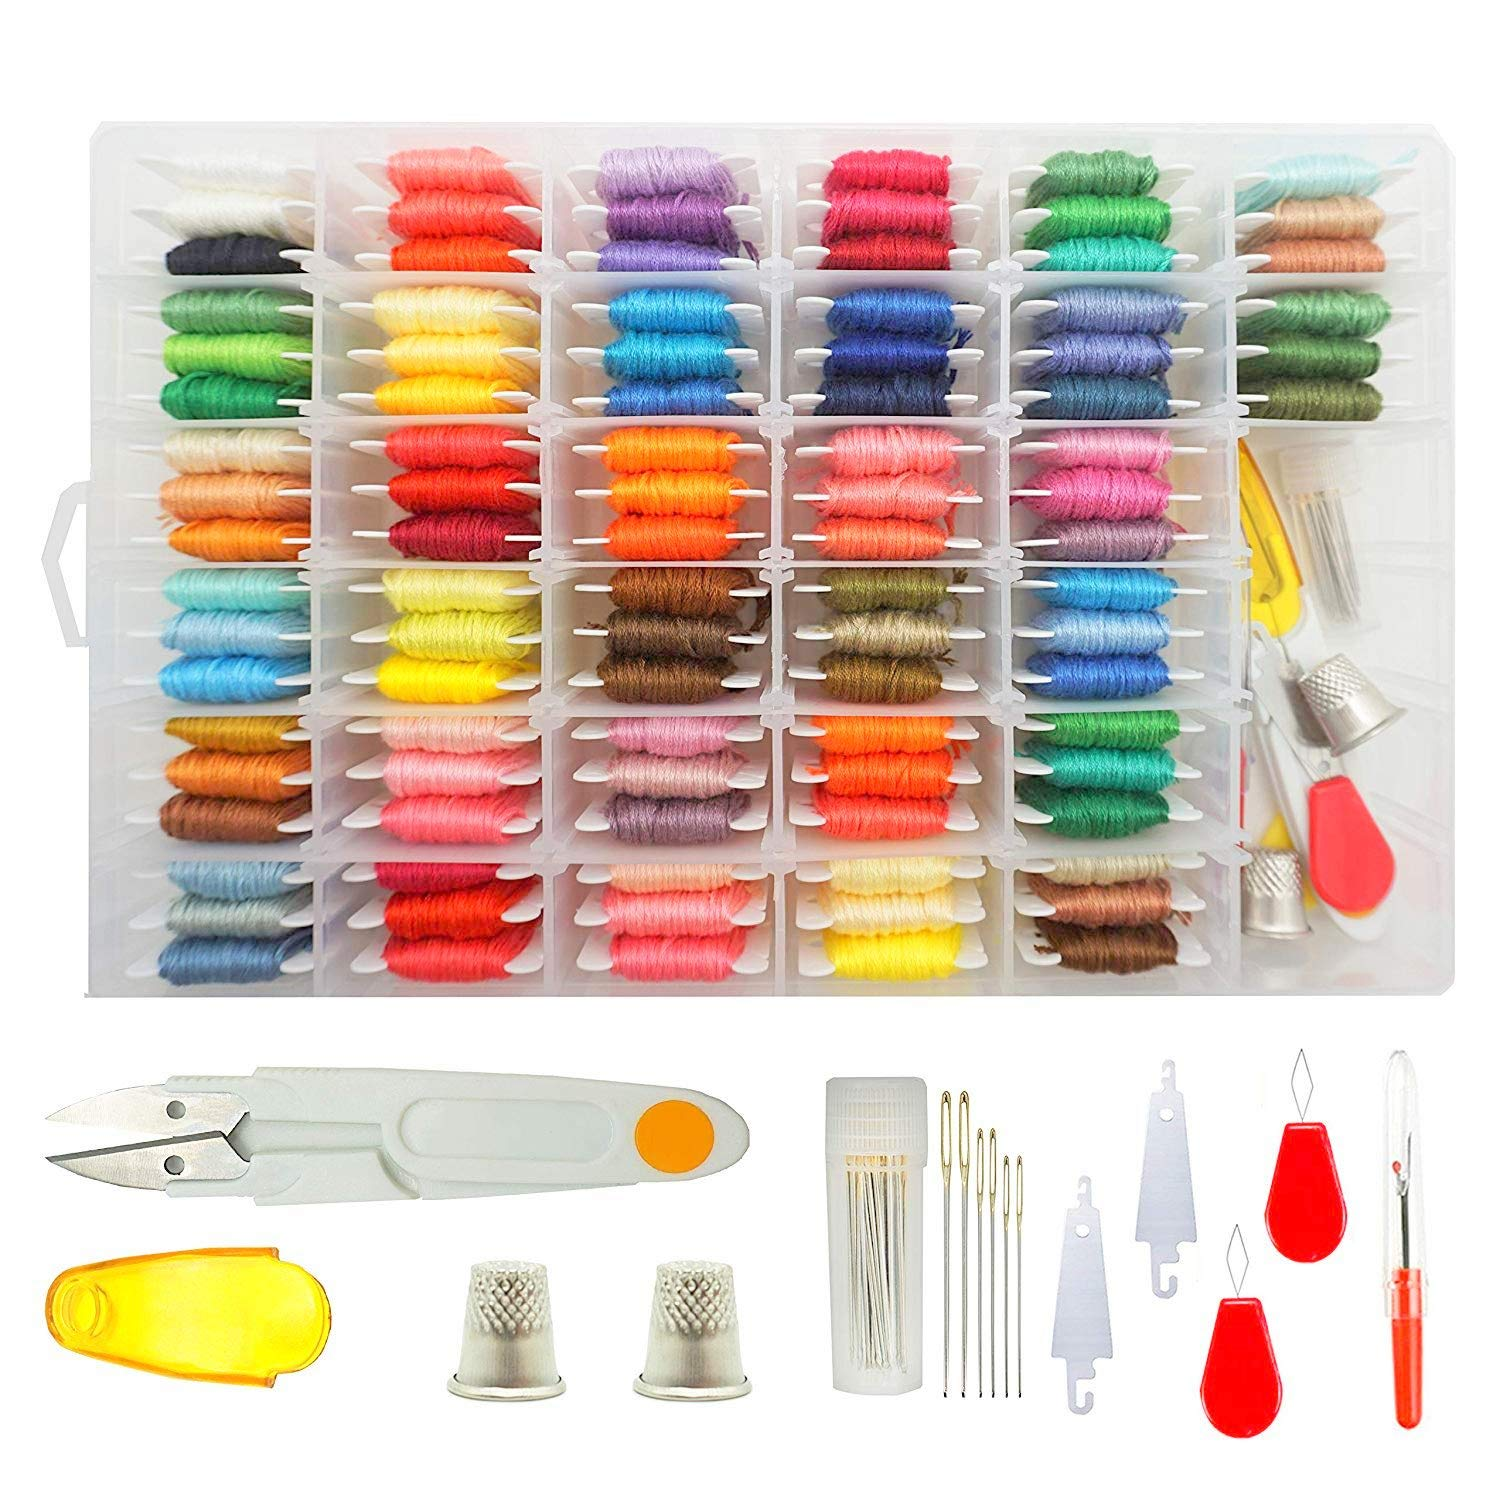 Embroidery Floss Cross Stitch Threads - Darley 99 Colors Friendship Bracelet String with Organizer Storage Box, Floss Bobbins and 38 Pcs Cross Stitch Kits by Darley Arts & Crafts